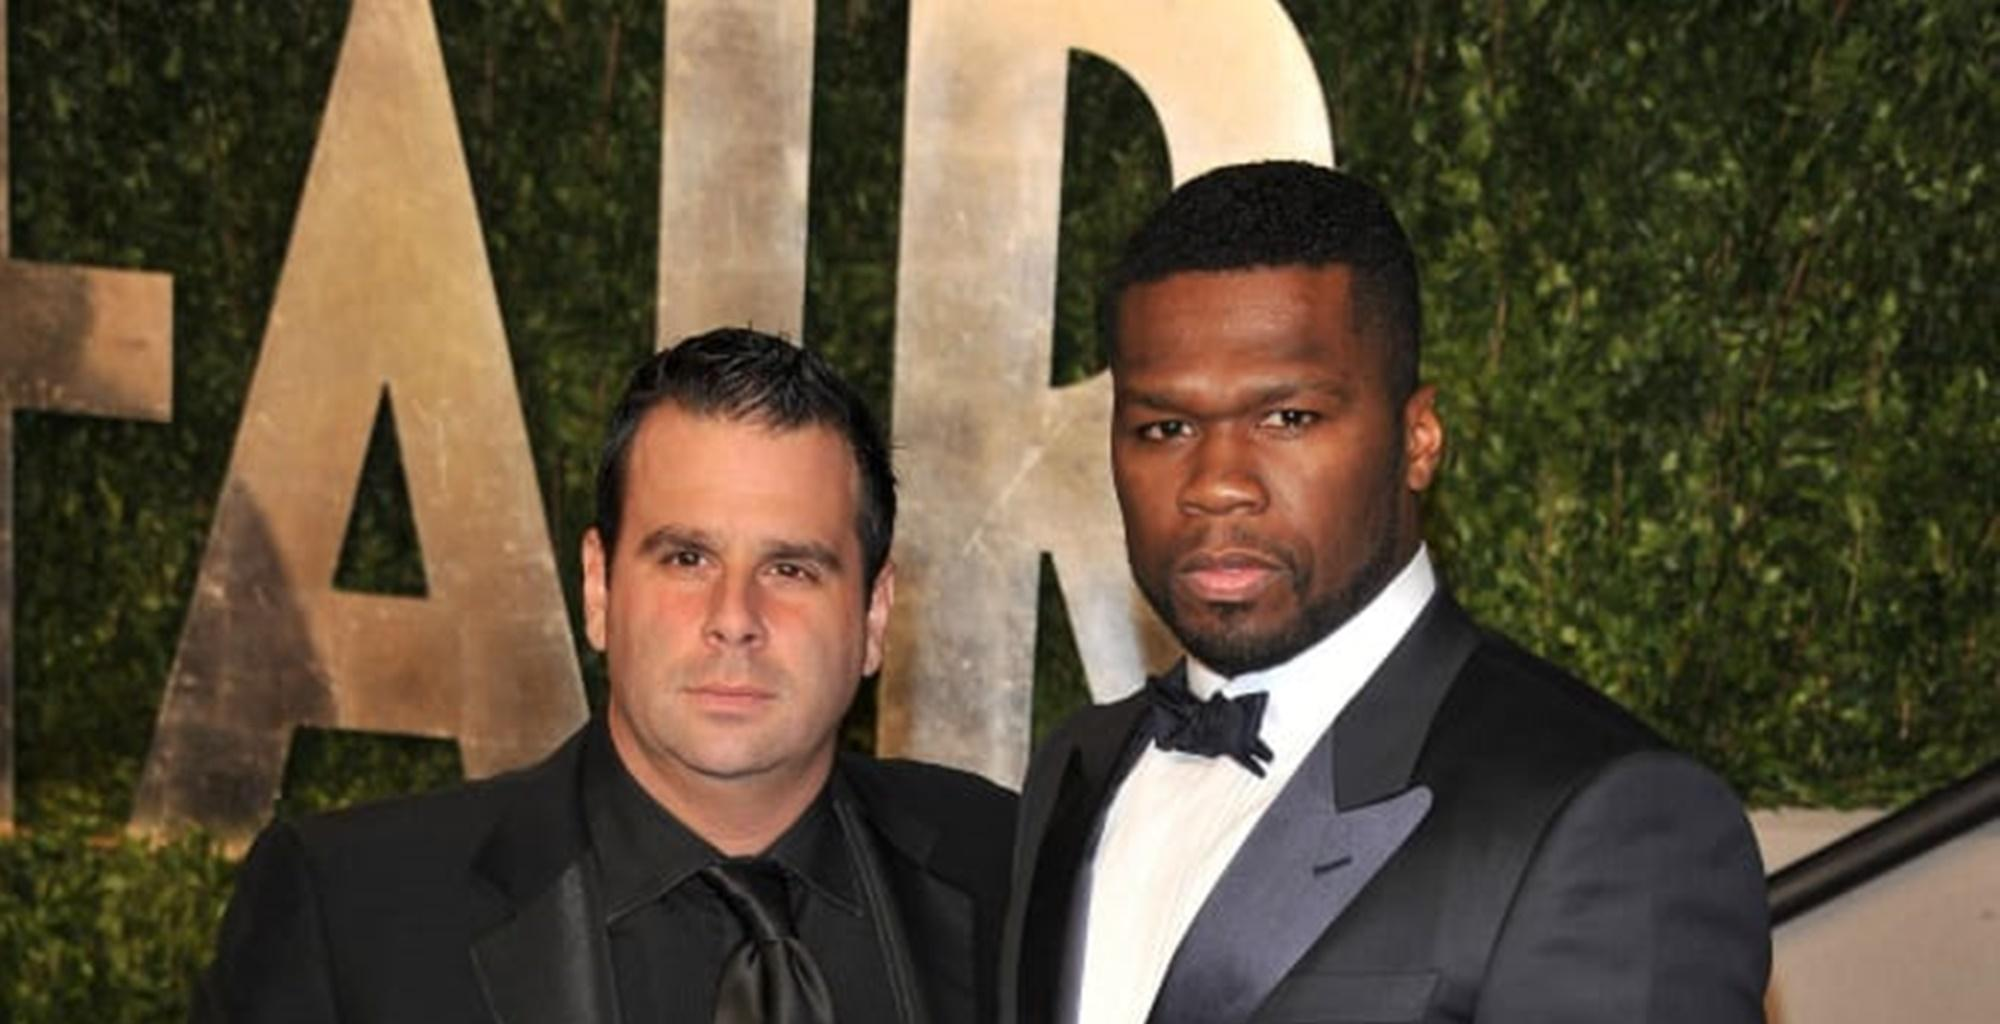 'Frustrated'50 Cent Started The Randall Emmett Feud For A Very Specific Reason -- It Had Nothing To Do With 'Vanderpump Rules' Star Lala Kent